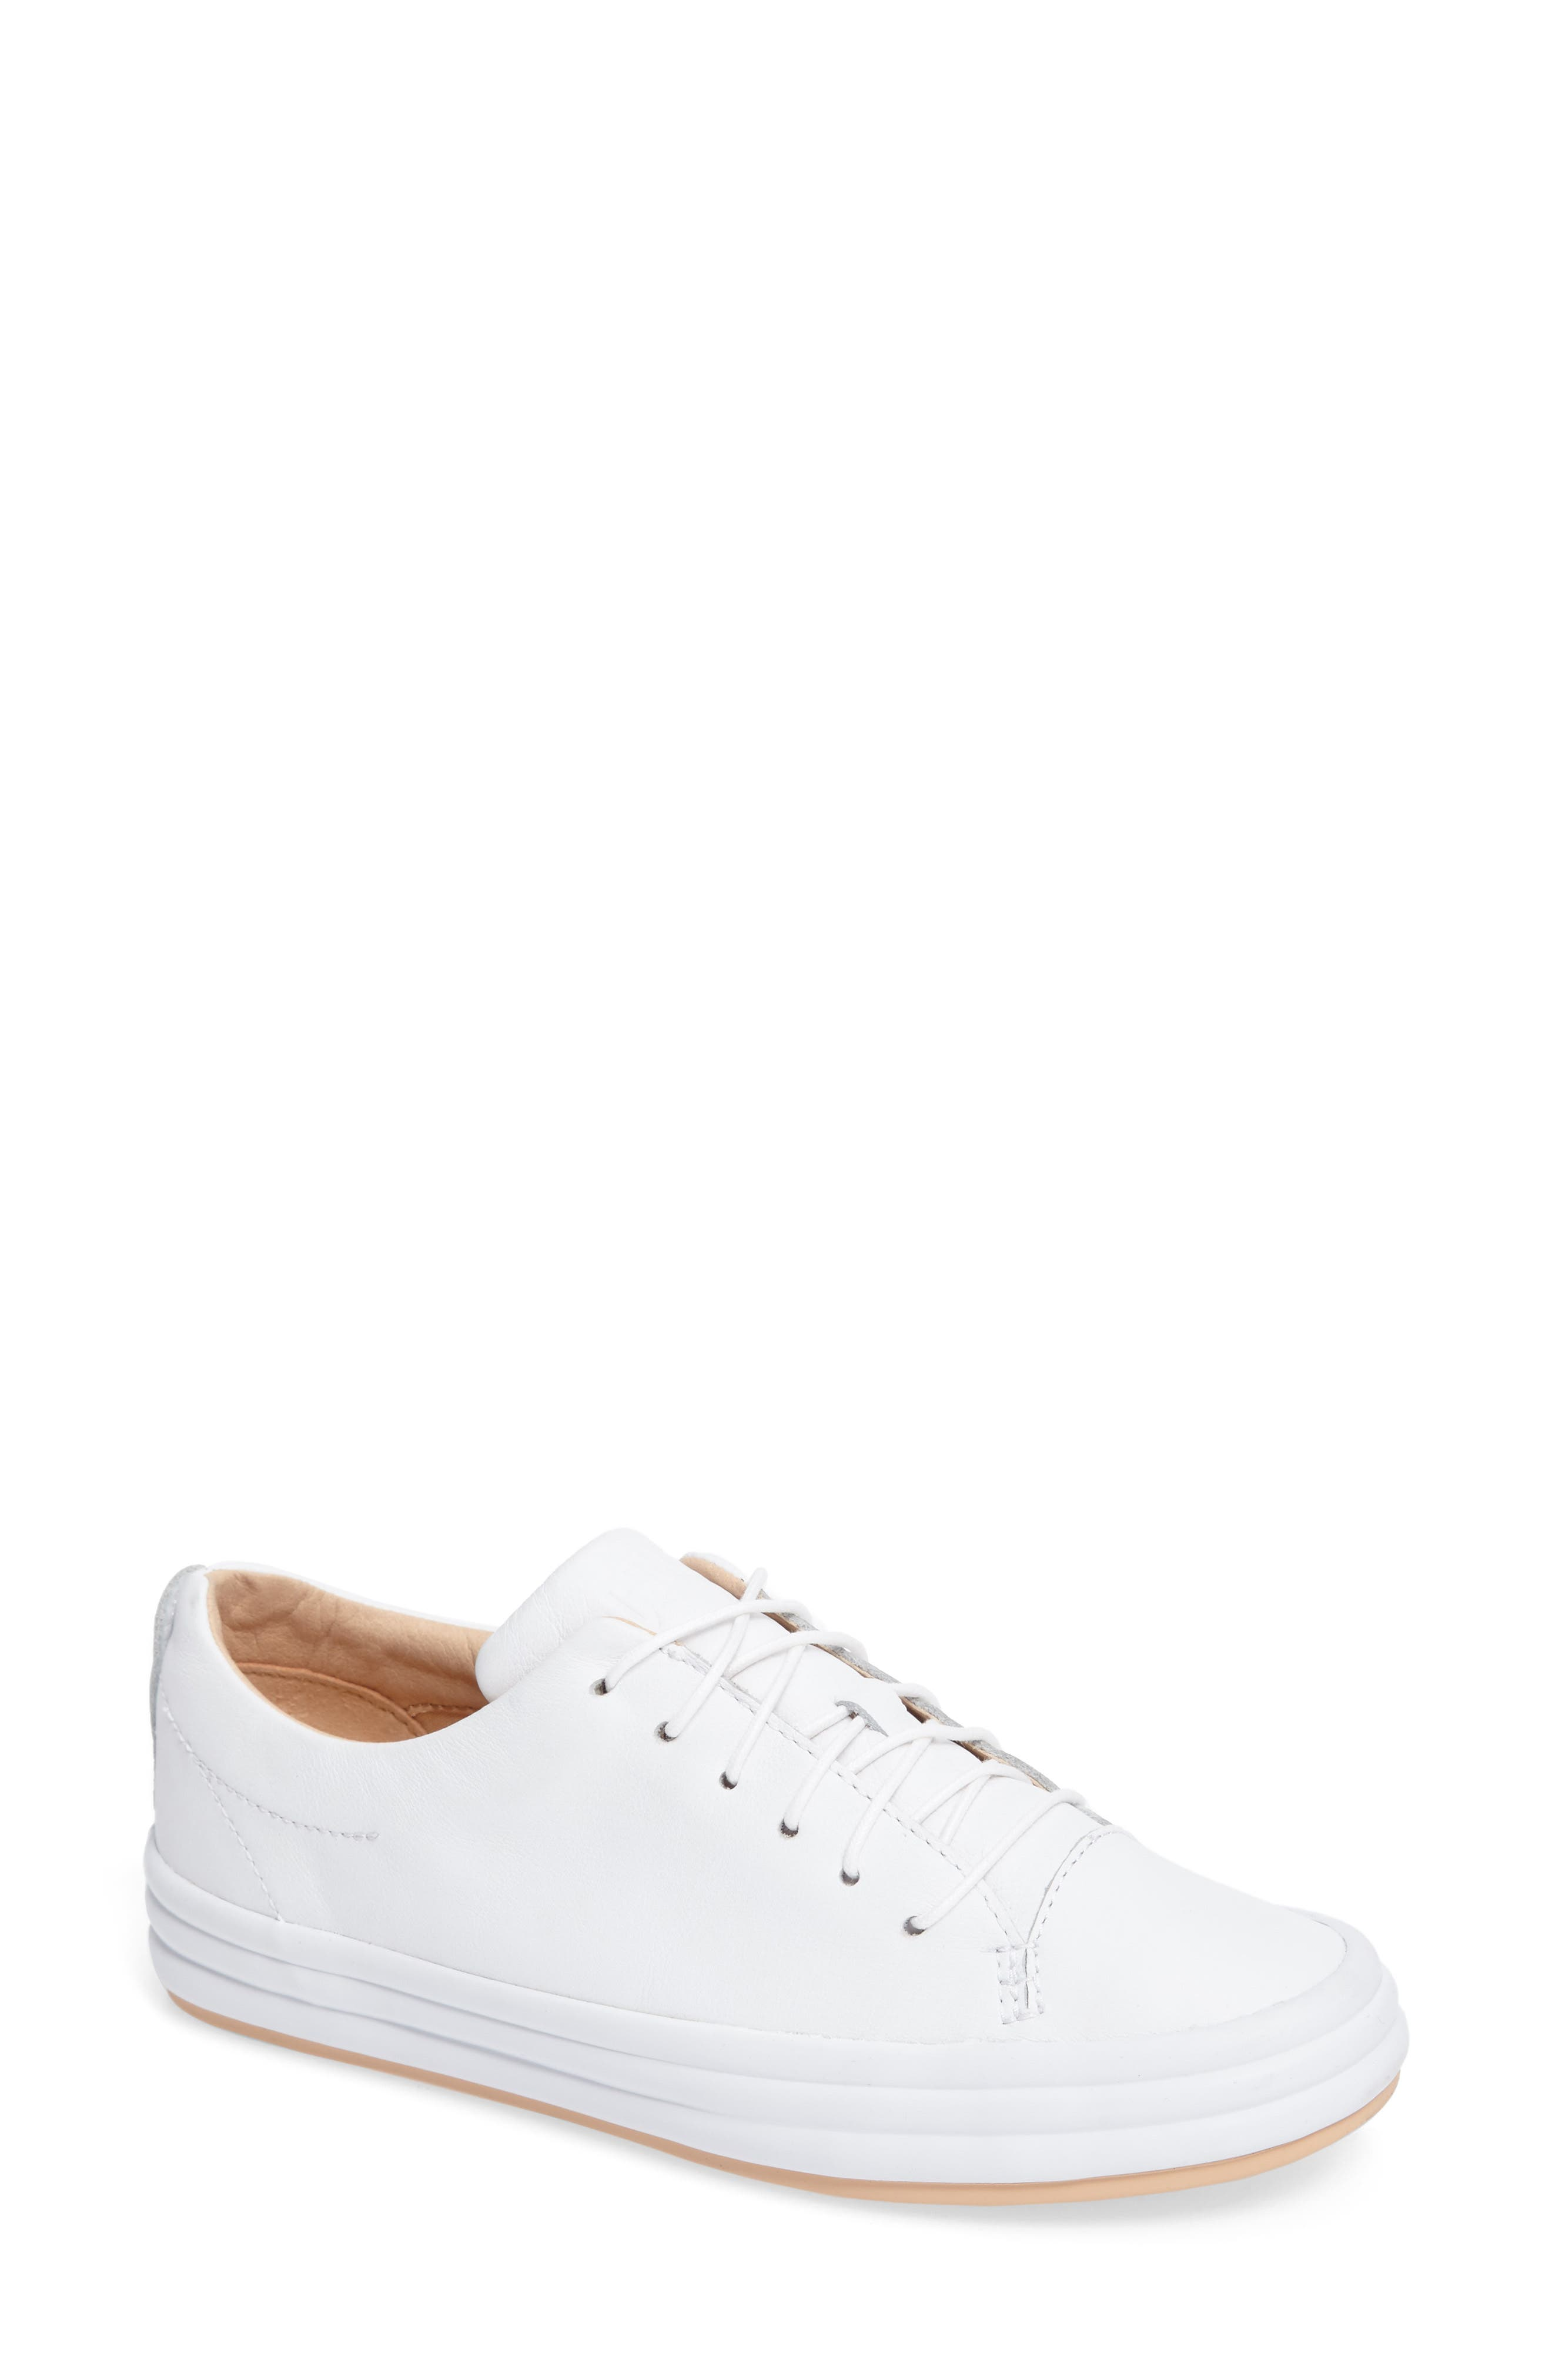 Hoops Sneaker,                         Main,                         color, WHITE LEATHER